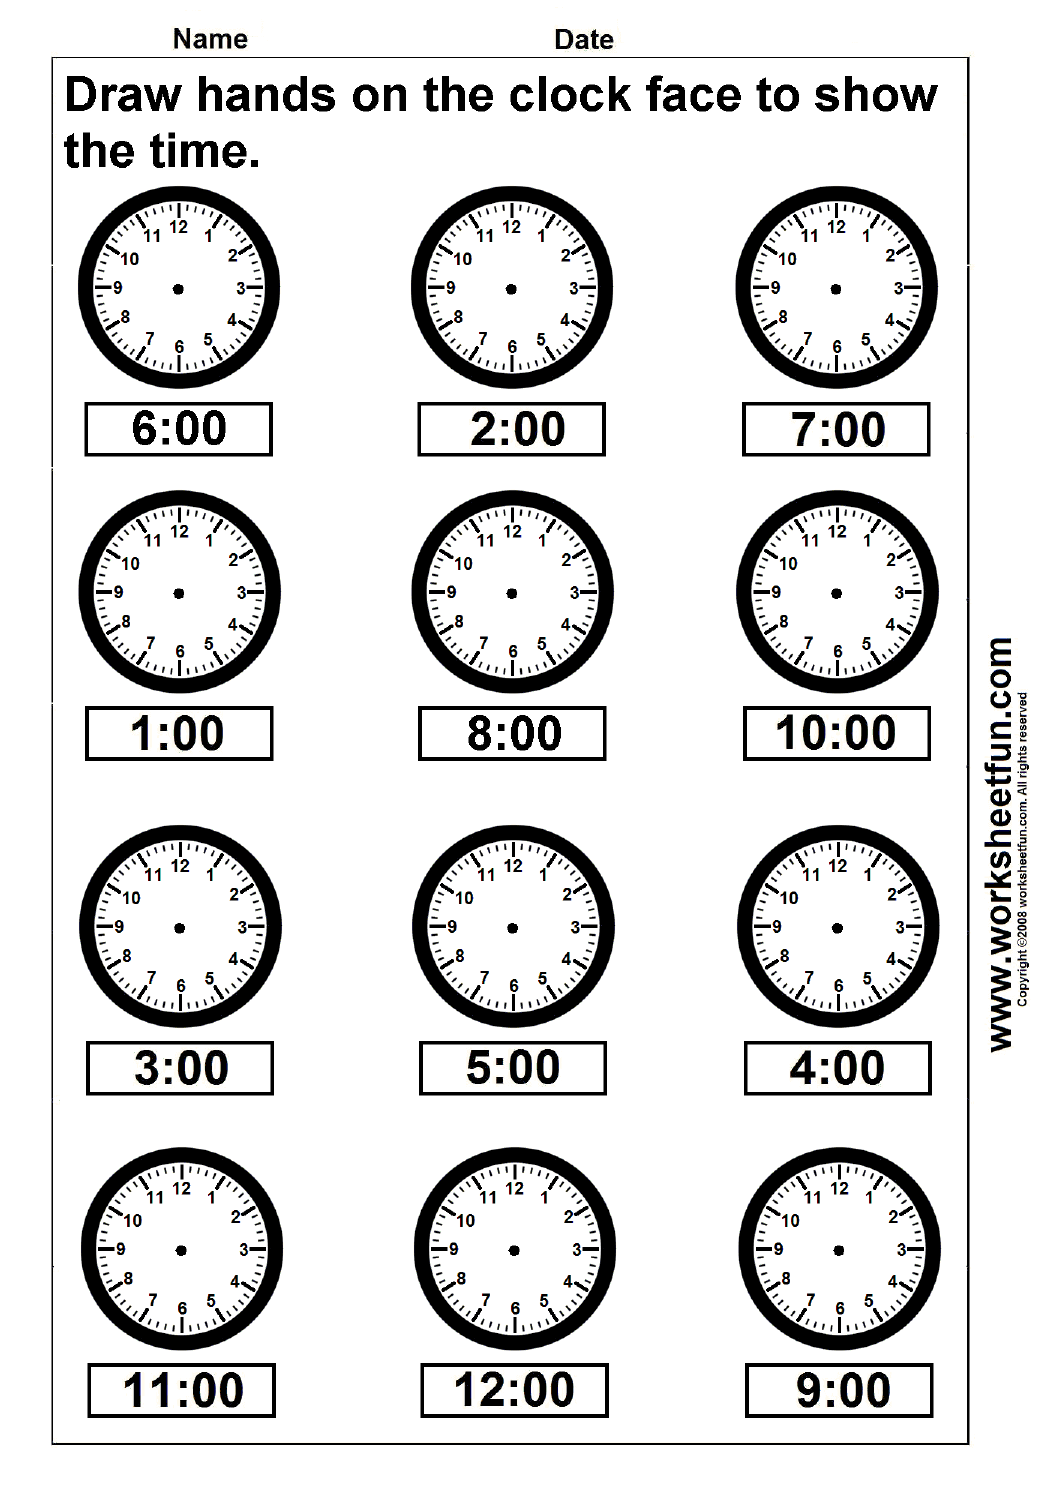 worksheet Worksheets On Time draw hands on the clock face to show time 4 worksheets worksheets